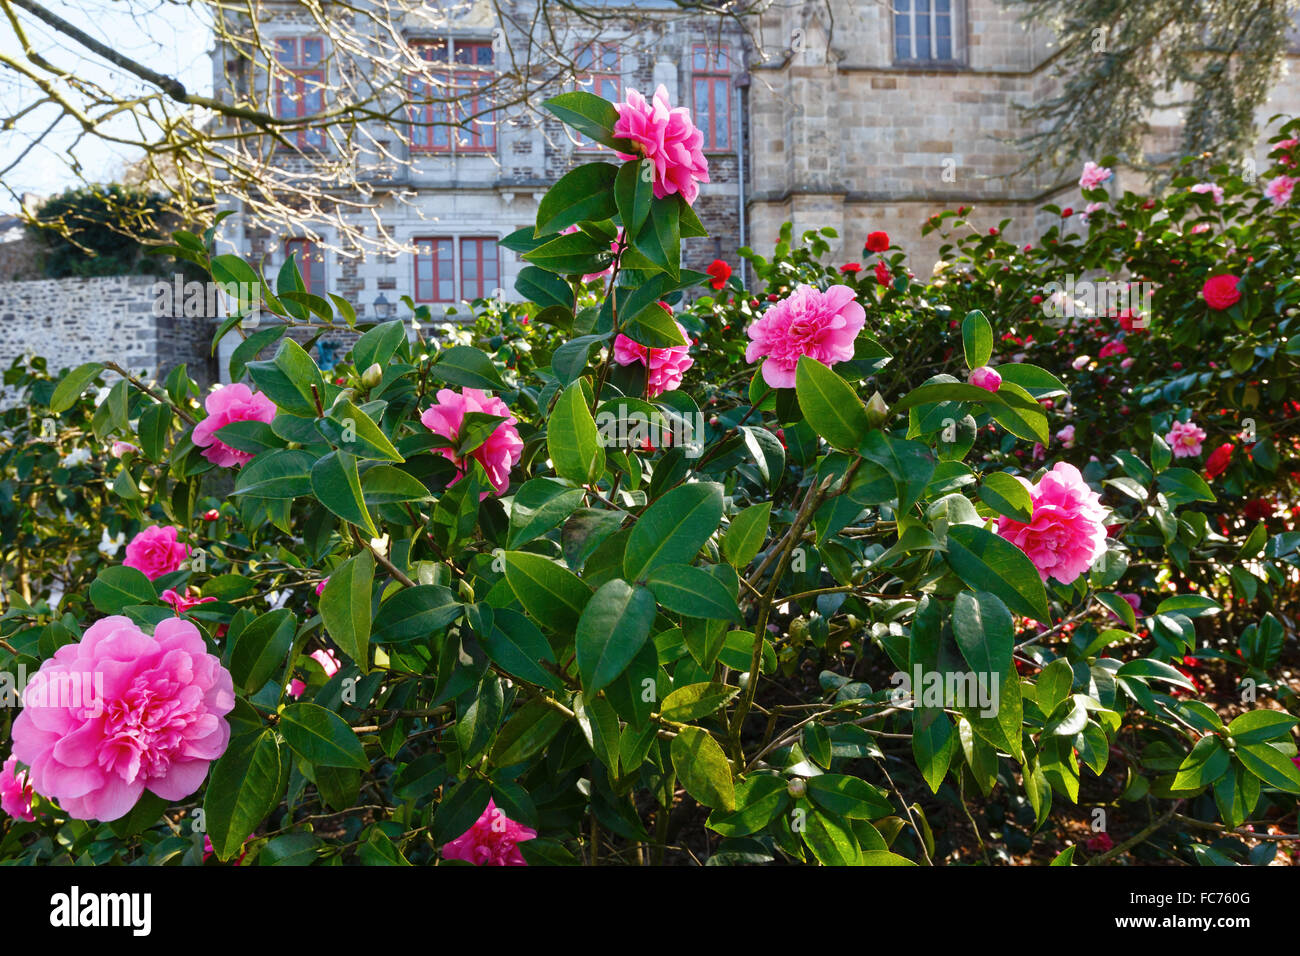 Blossoming Camellia Bush With Pink Flowers Stock Photo 93586096 Alamy